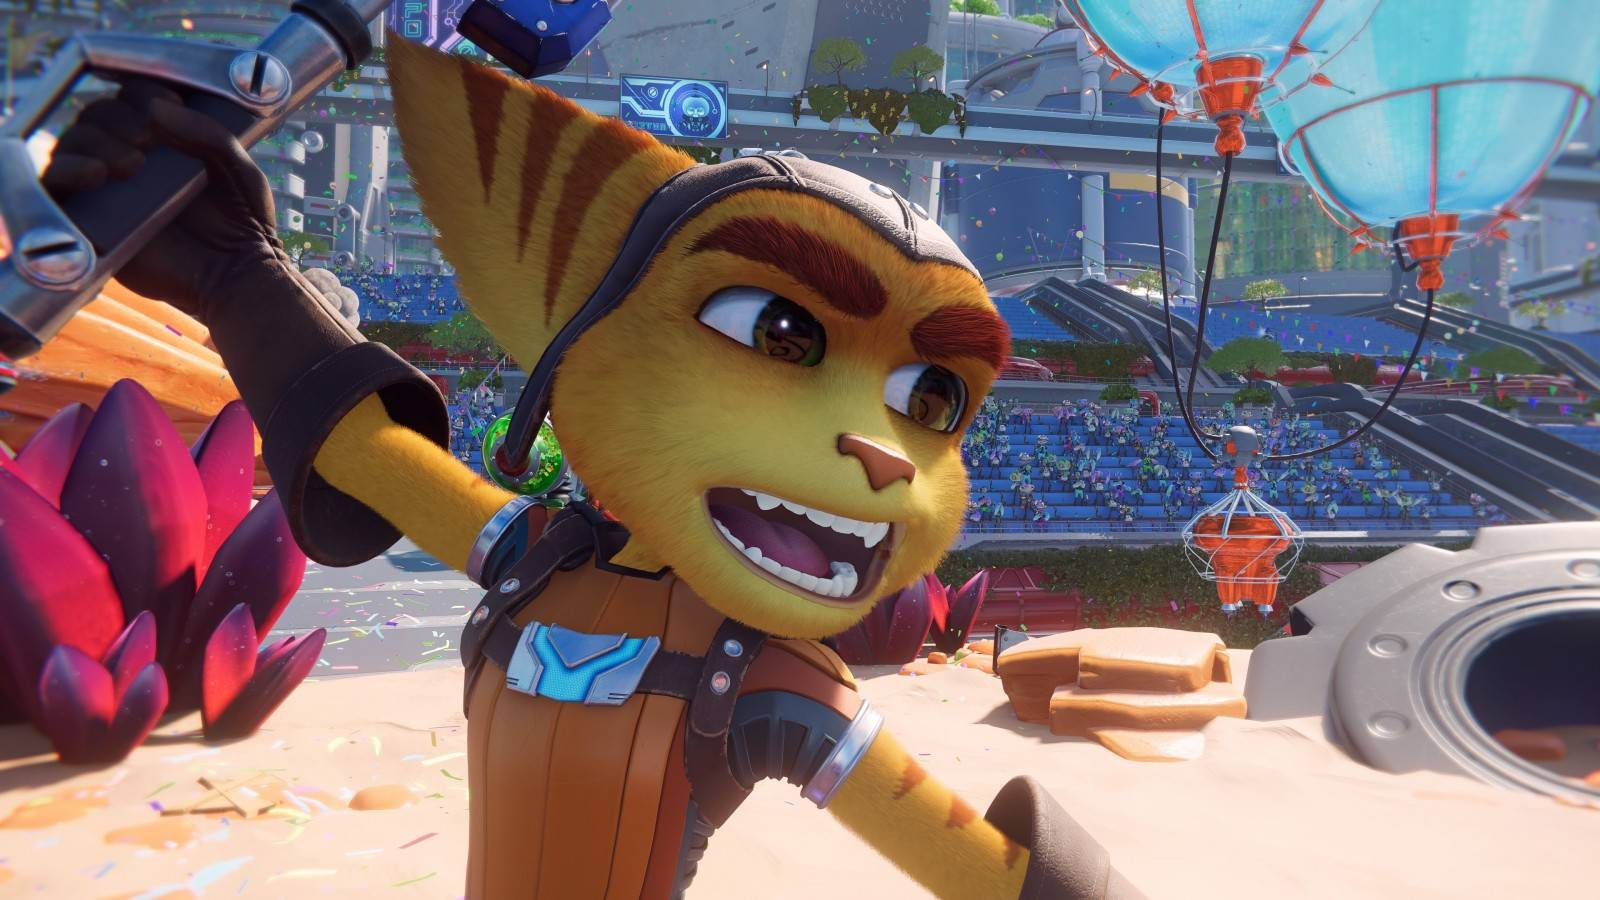 Reseña: Ratchet and Clank: Rift Apart (PlayStation 5) 5